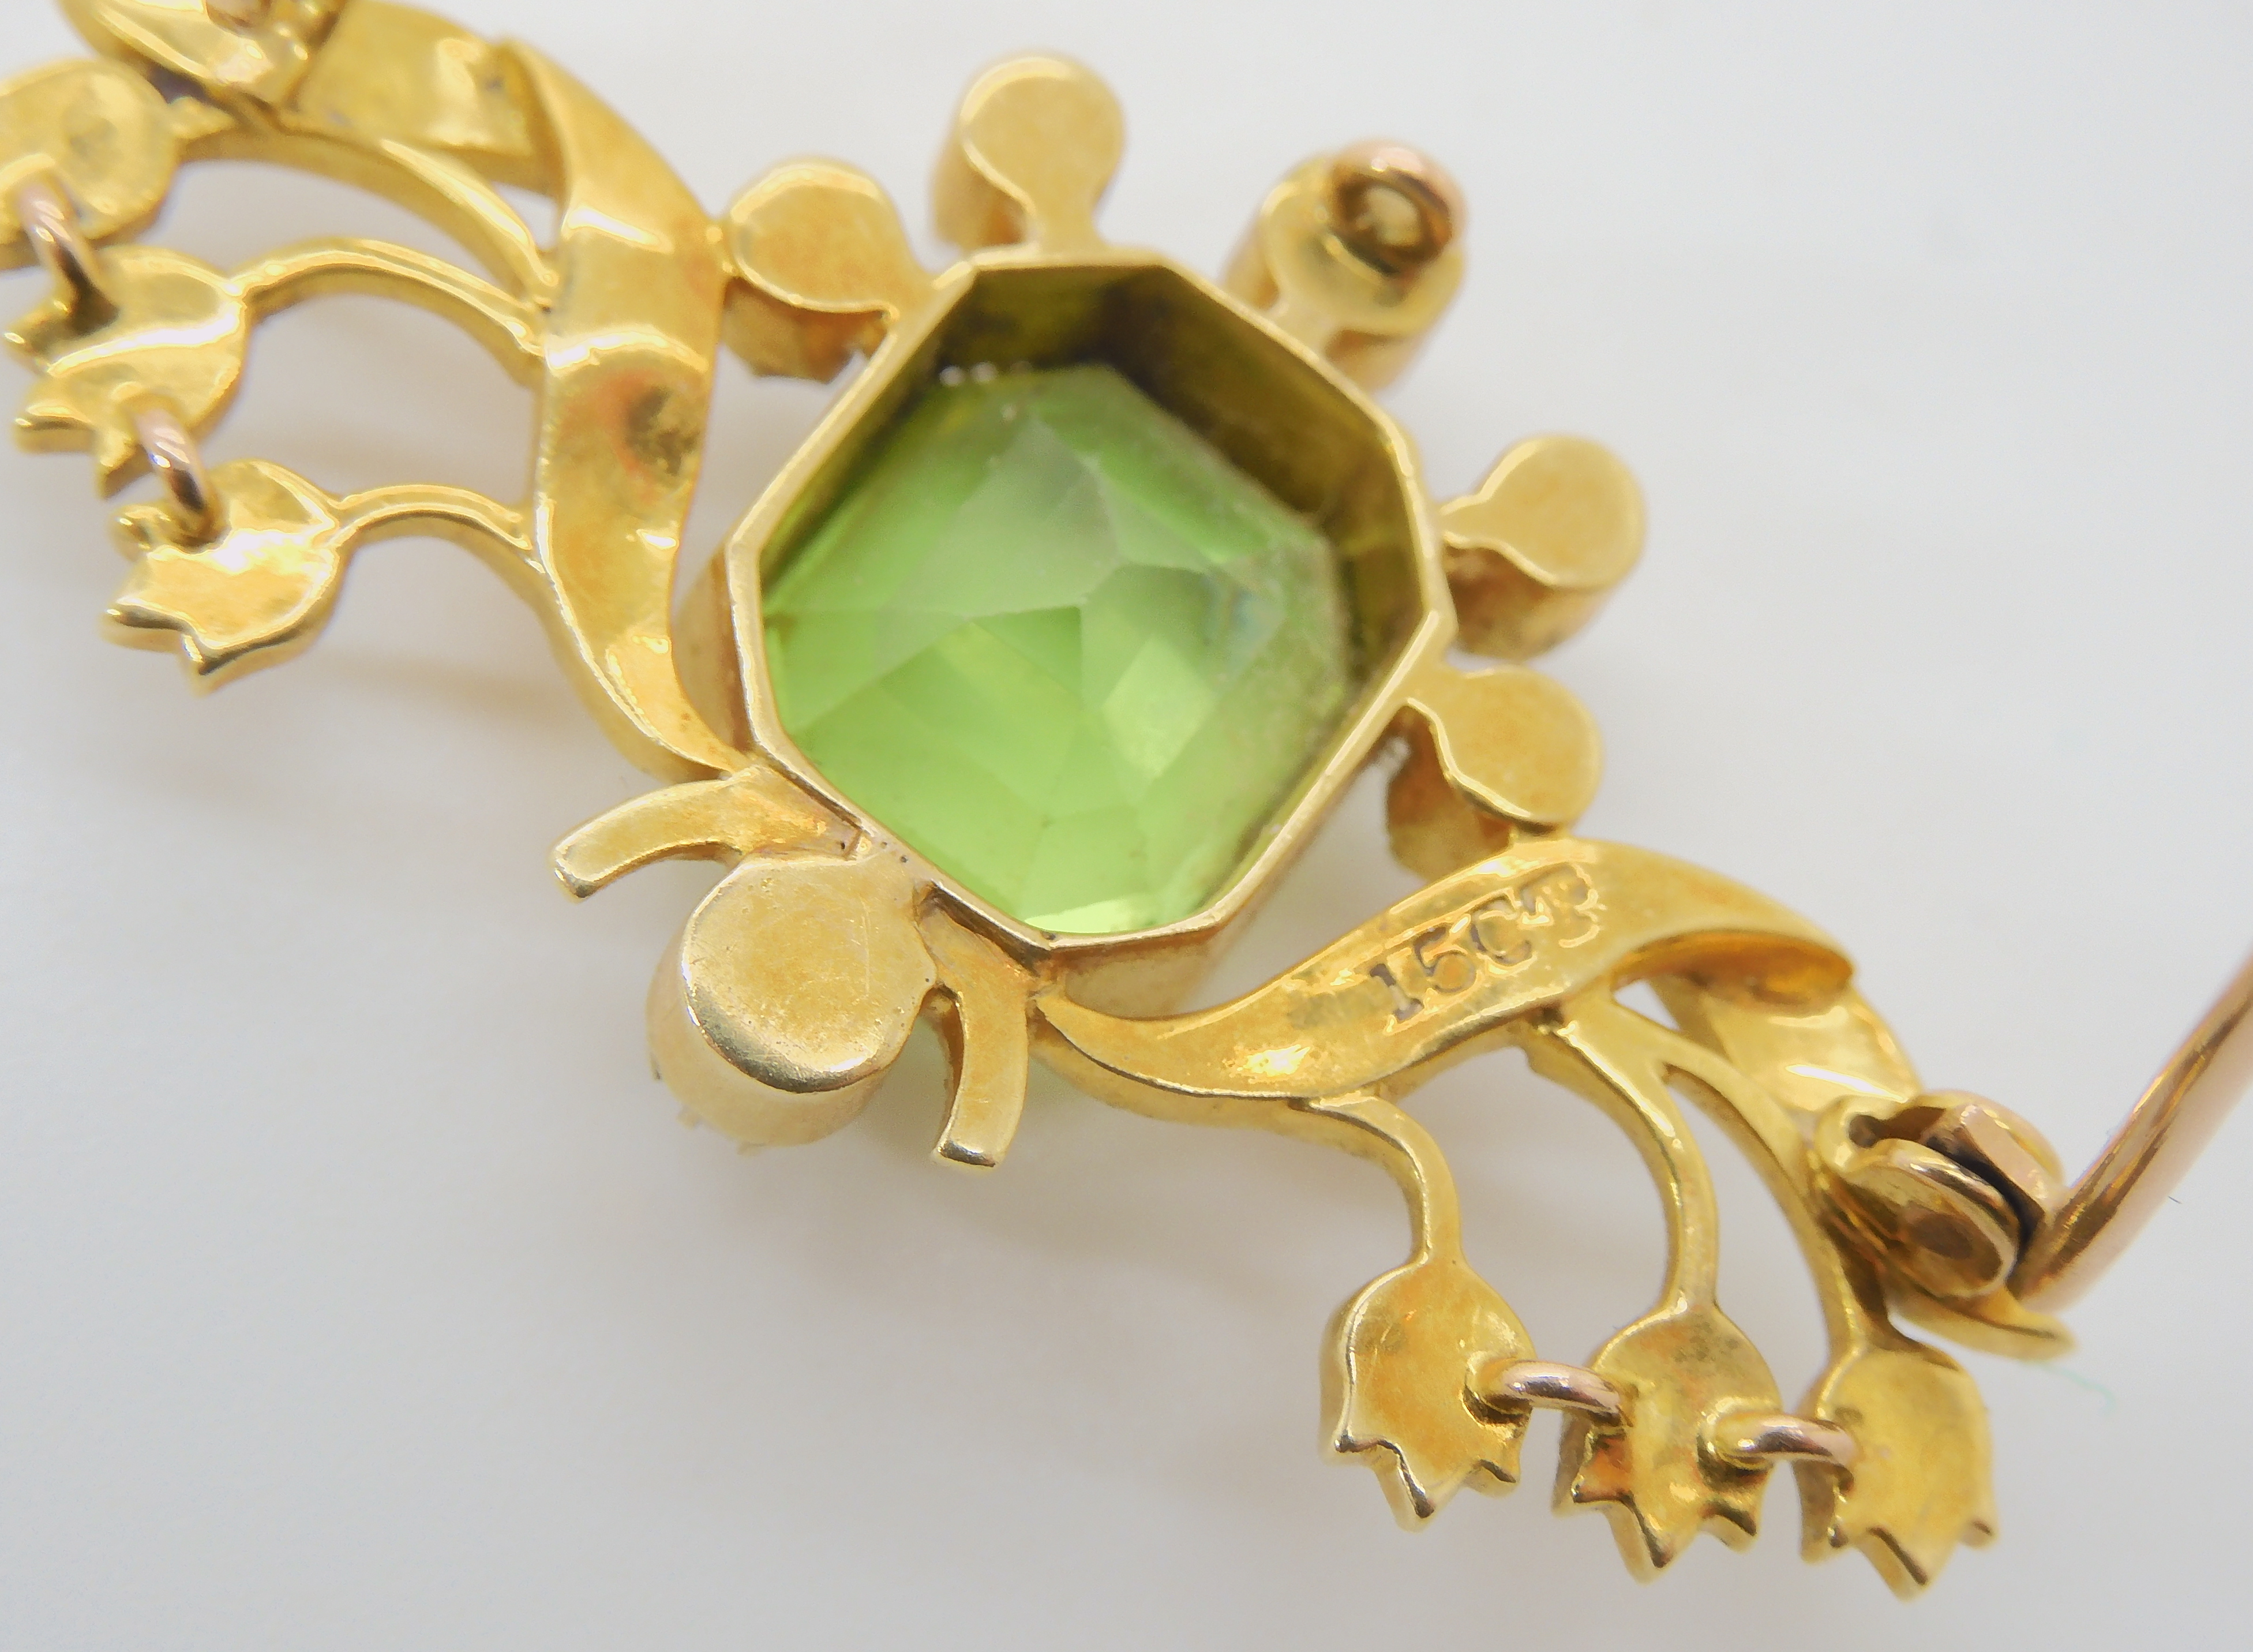 A 15CT GOLD PERIDOT AND PEARL EDWARDIAN BROOCH depicting lily of the valley, the peridot is - Image 3 of 3